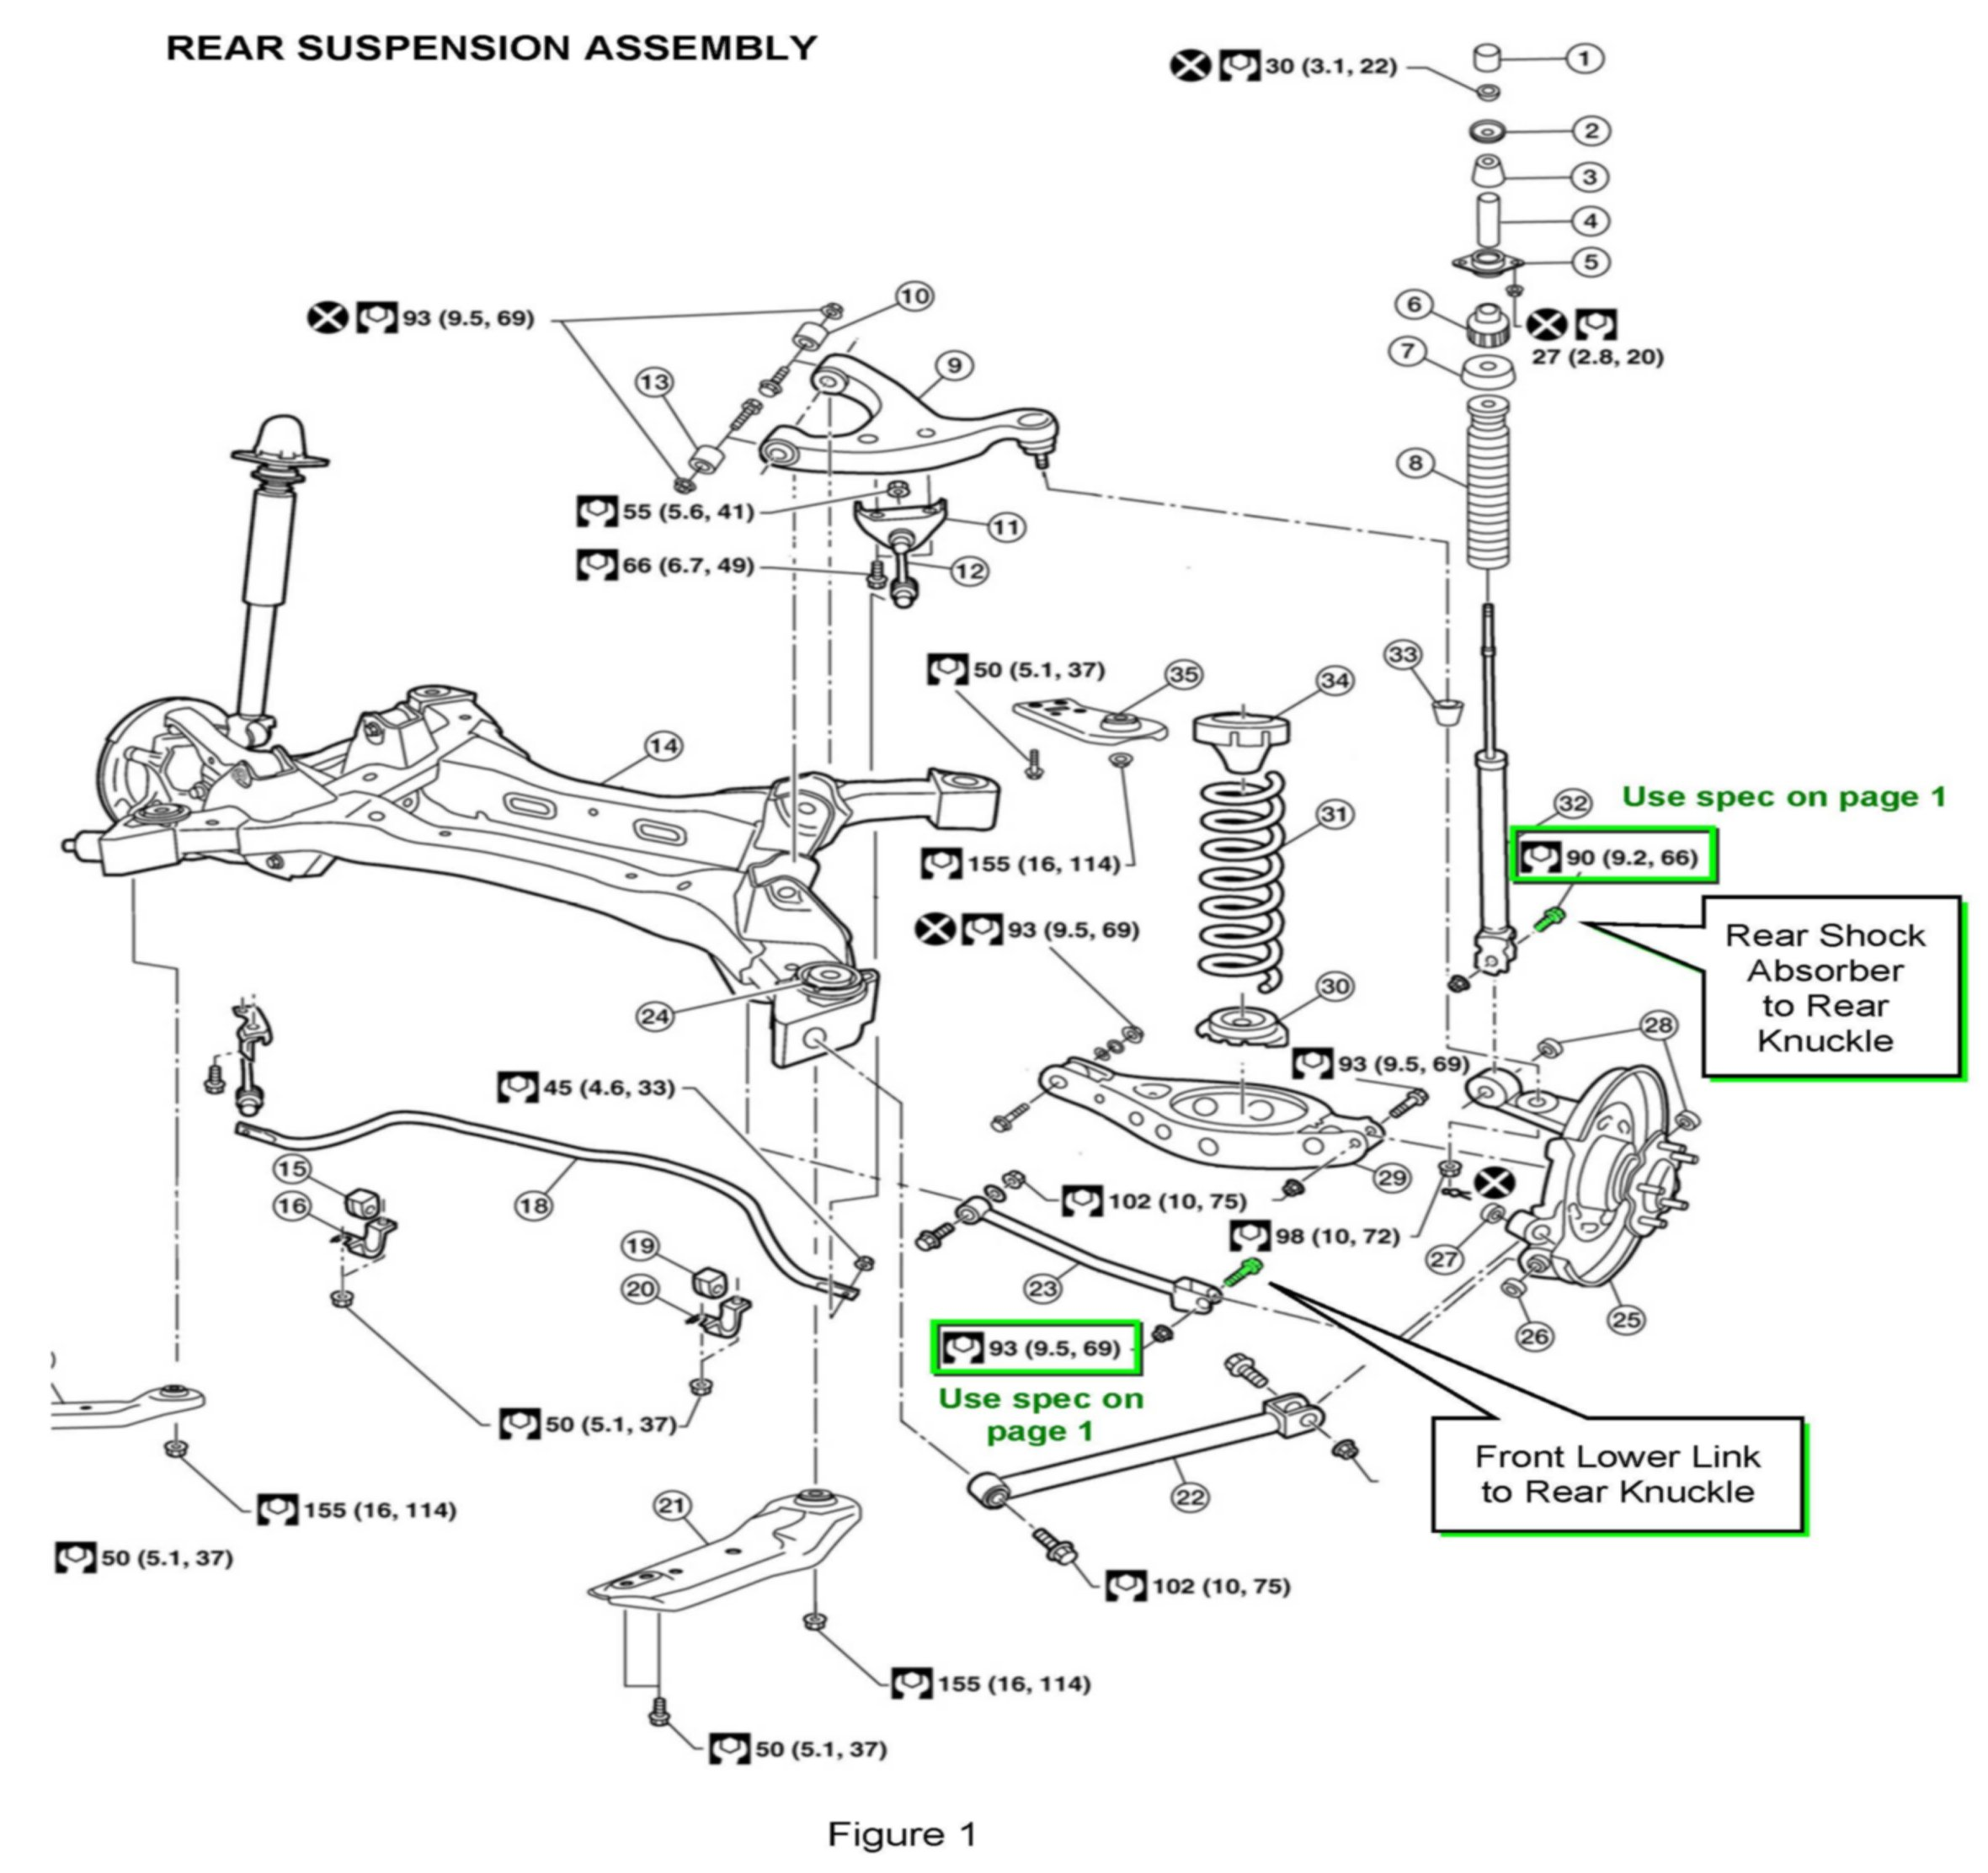 173754824 on 2005 chevy trailblazer engine diagram